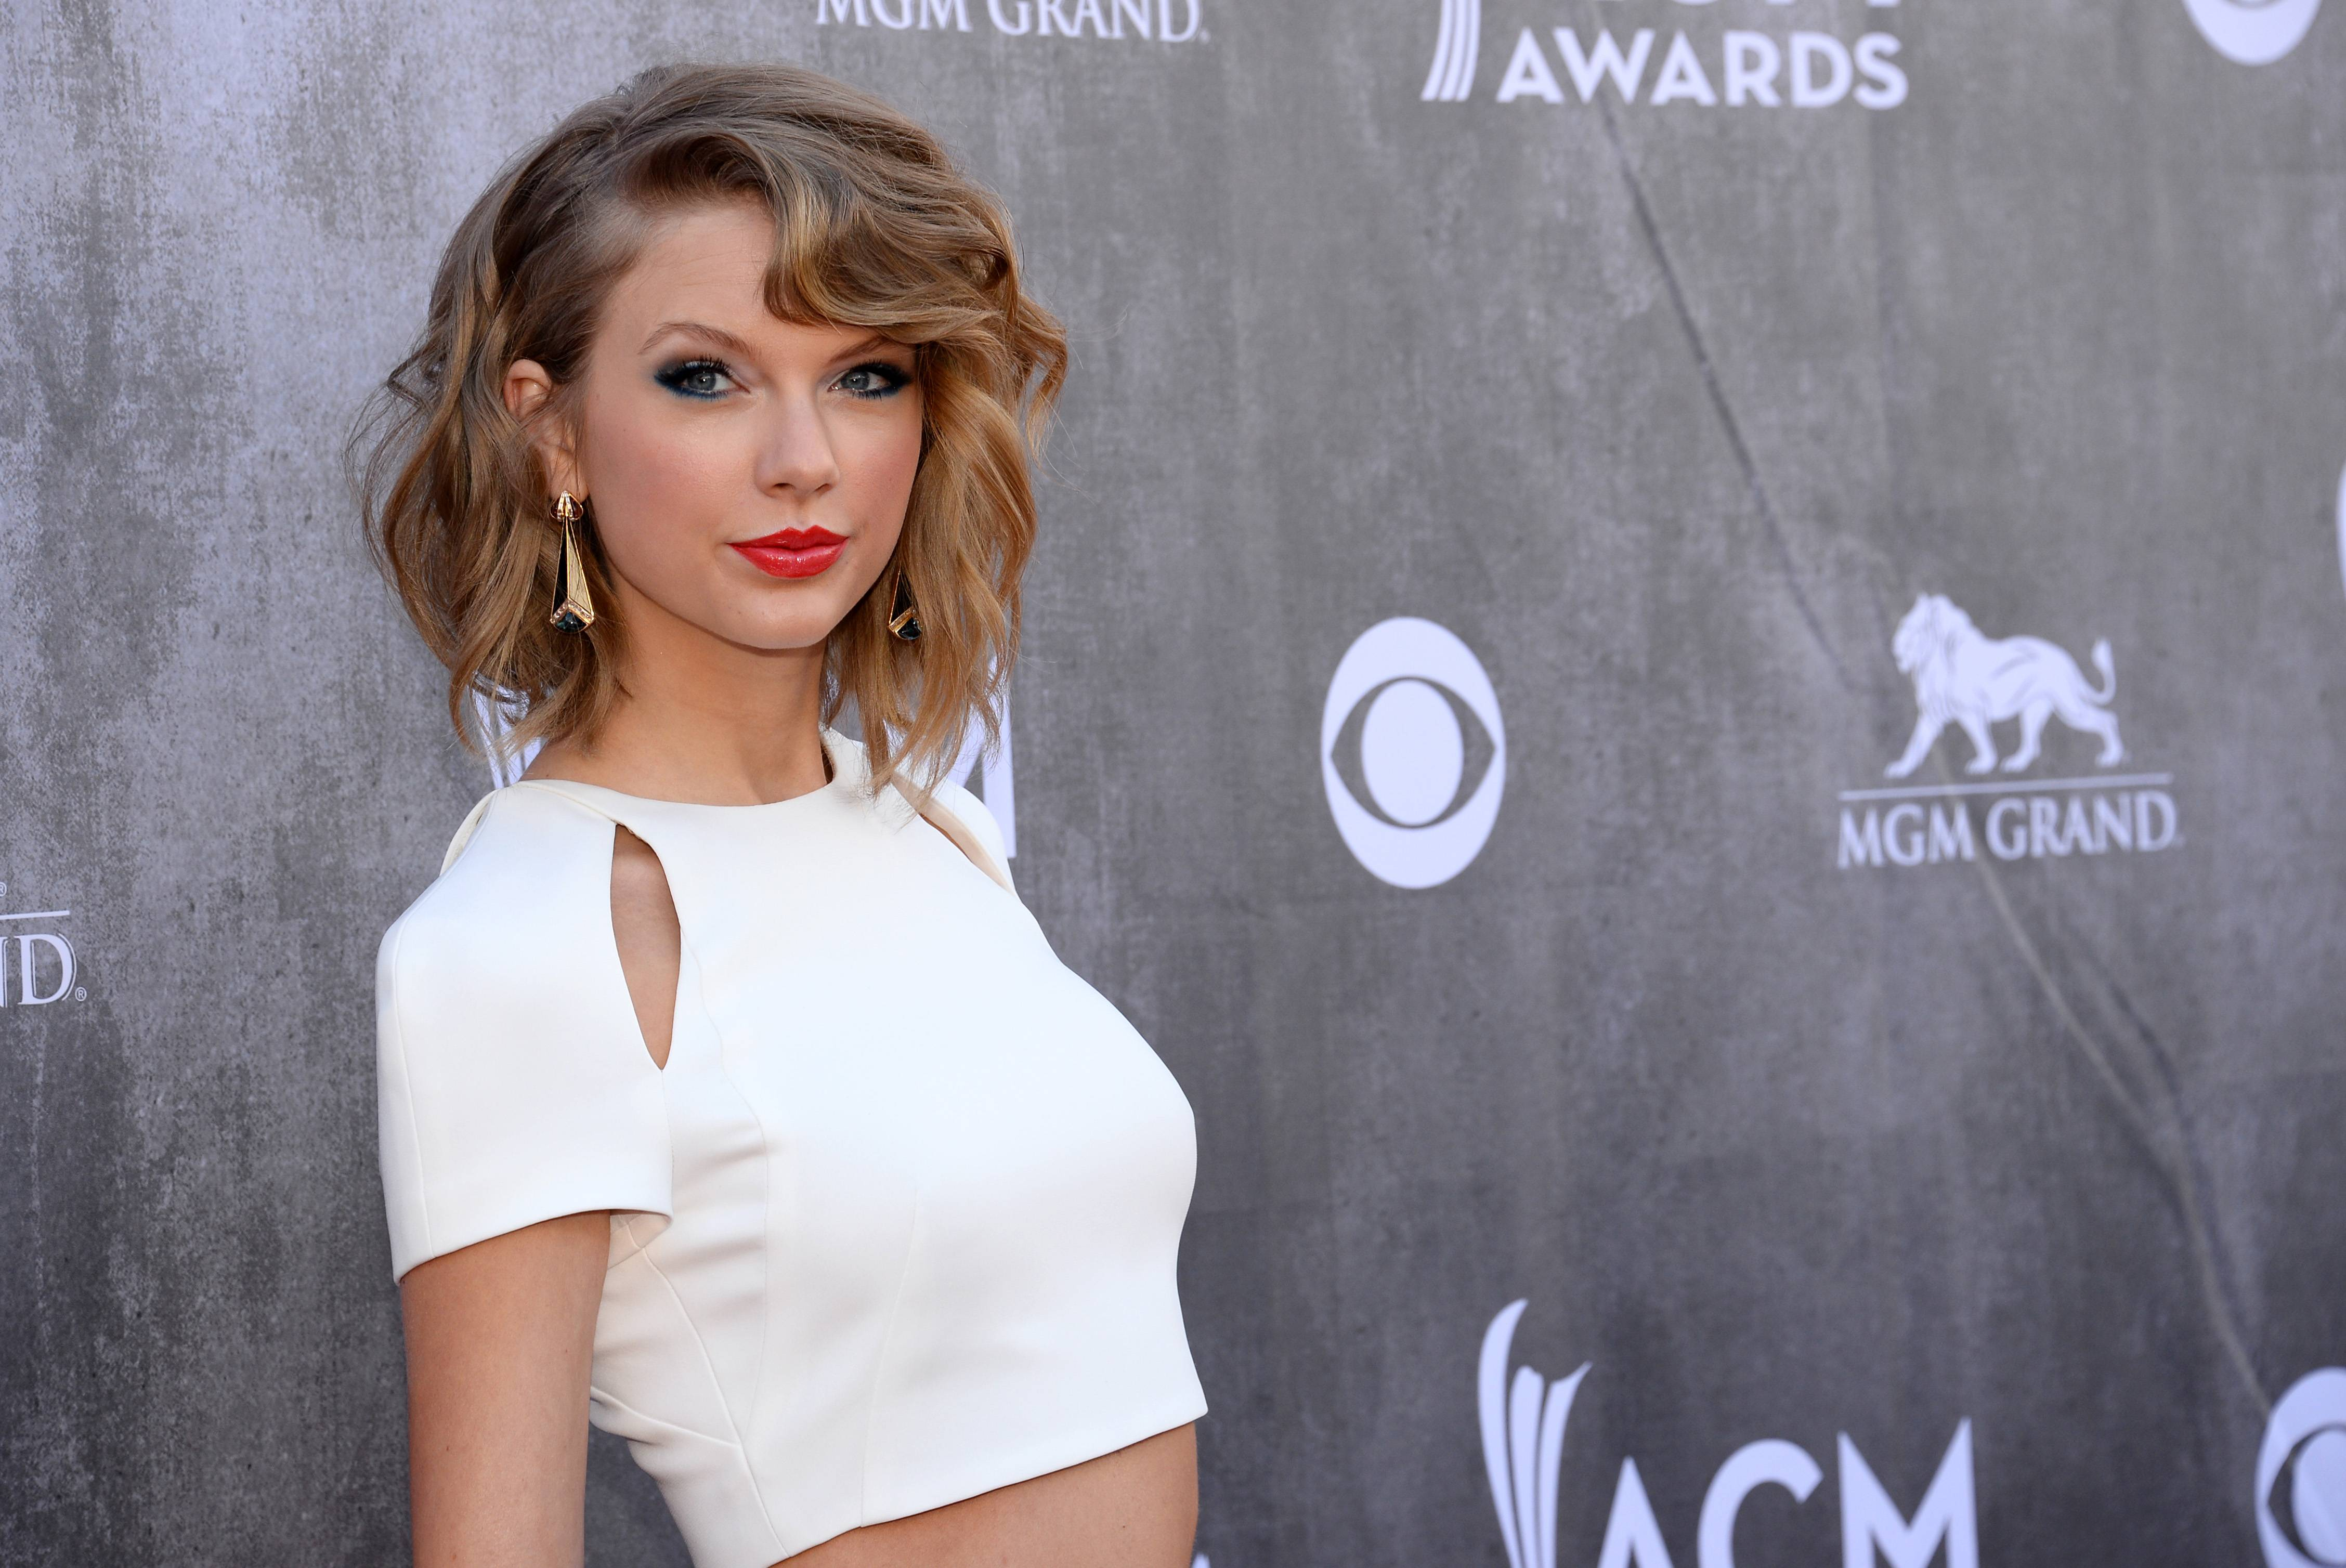 Three Connecticut residents have pleaded not guilty to causing a disturbance at a Rhode Island house owned by Taylor Swift.